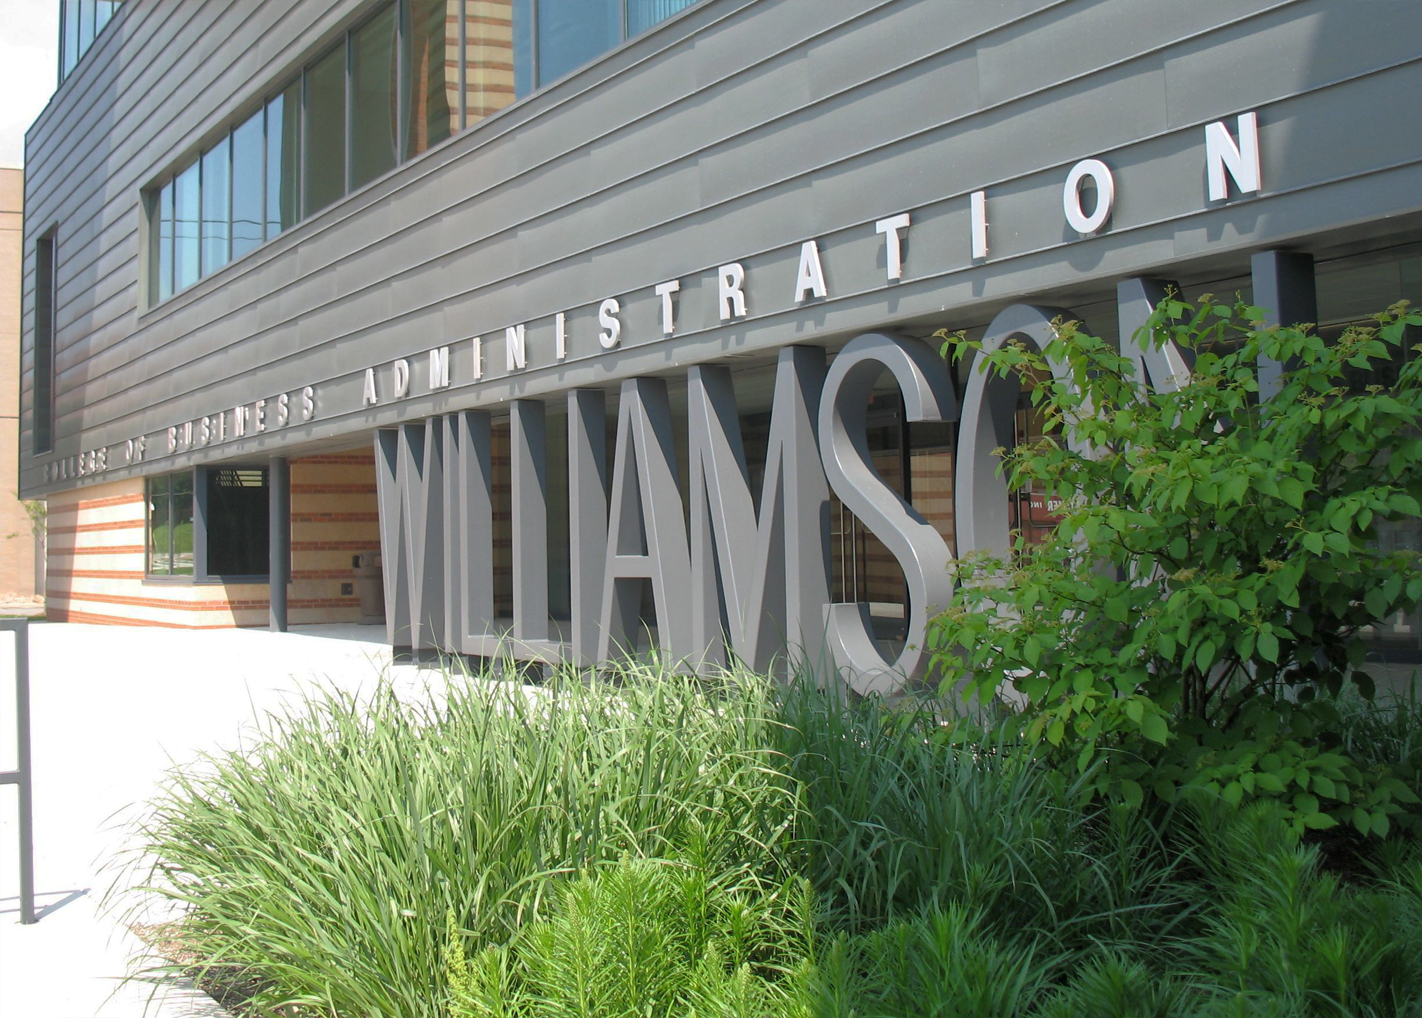 YOUNGSTOWN STATE UNIVERSITY WILLIAMSON SCHOOL OF BUSINESS ADMINISTRATION